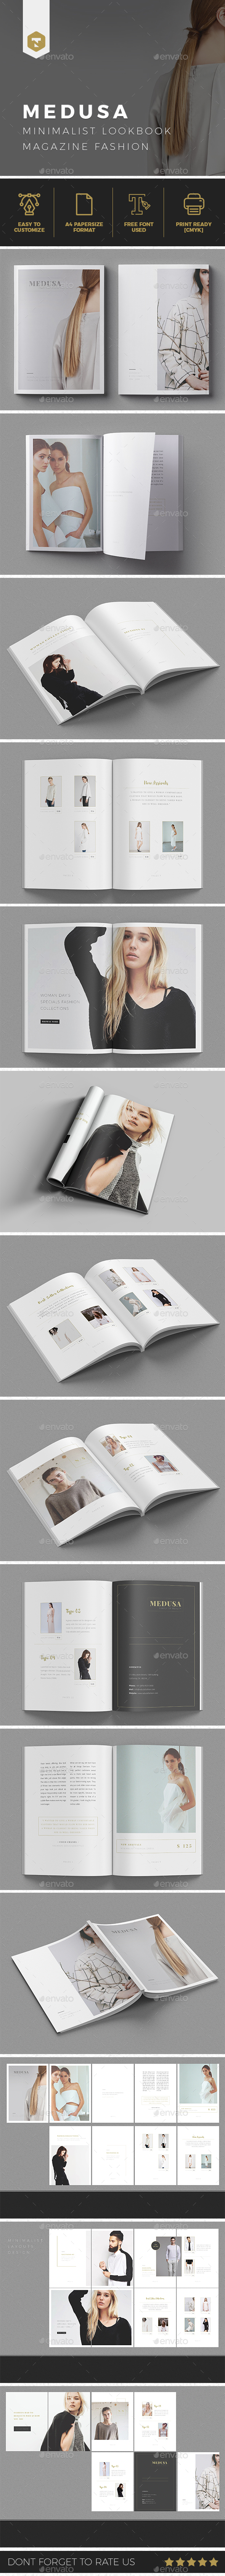 MEDUSA  |  Lookbook/Magazine Fashion - Brochures Print Templates